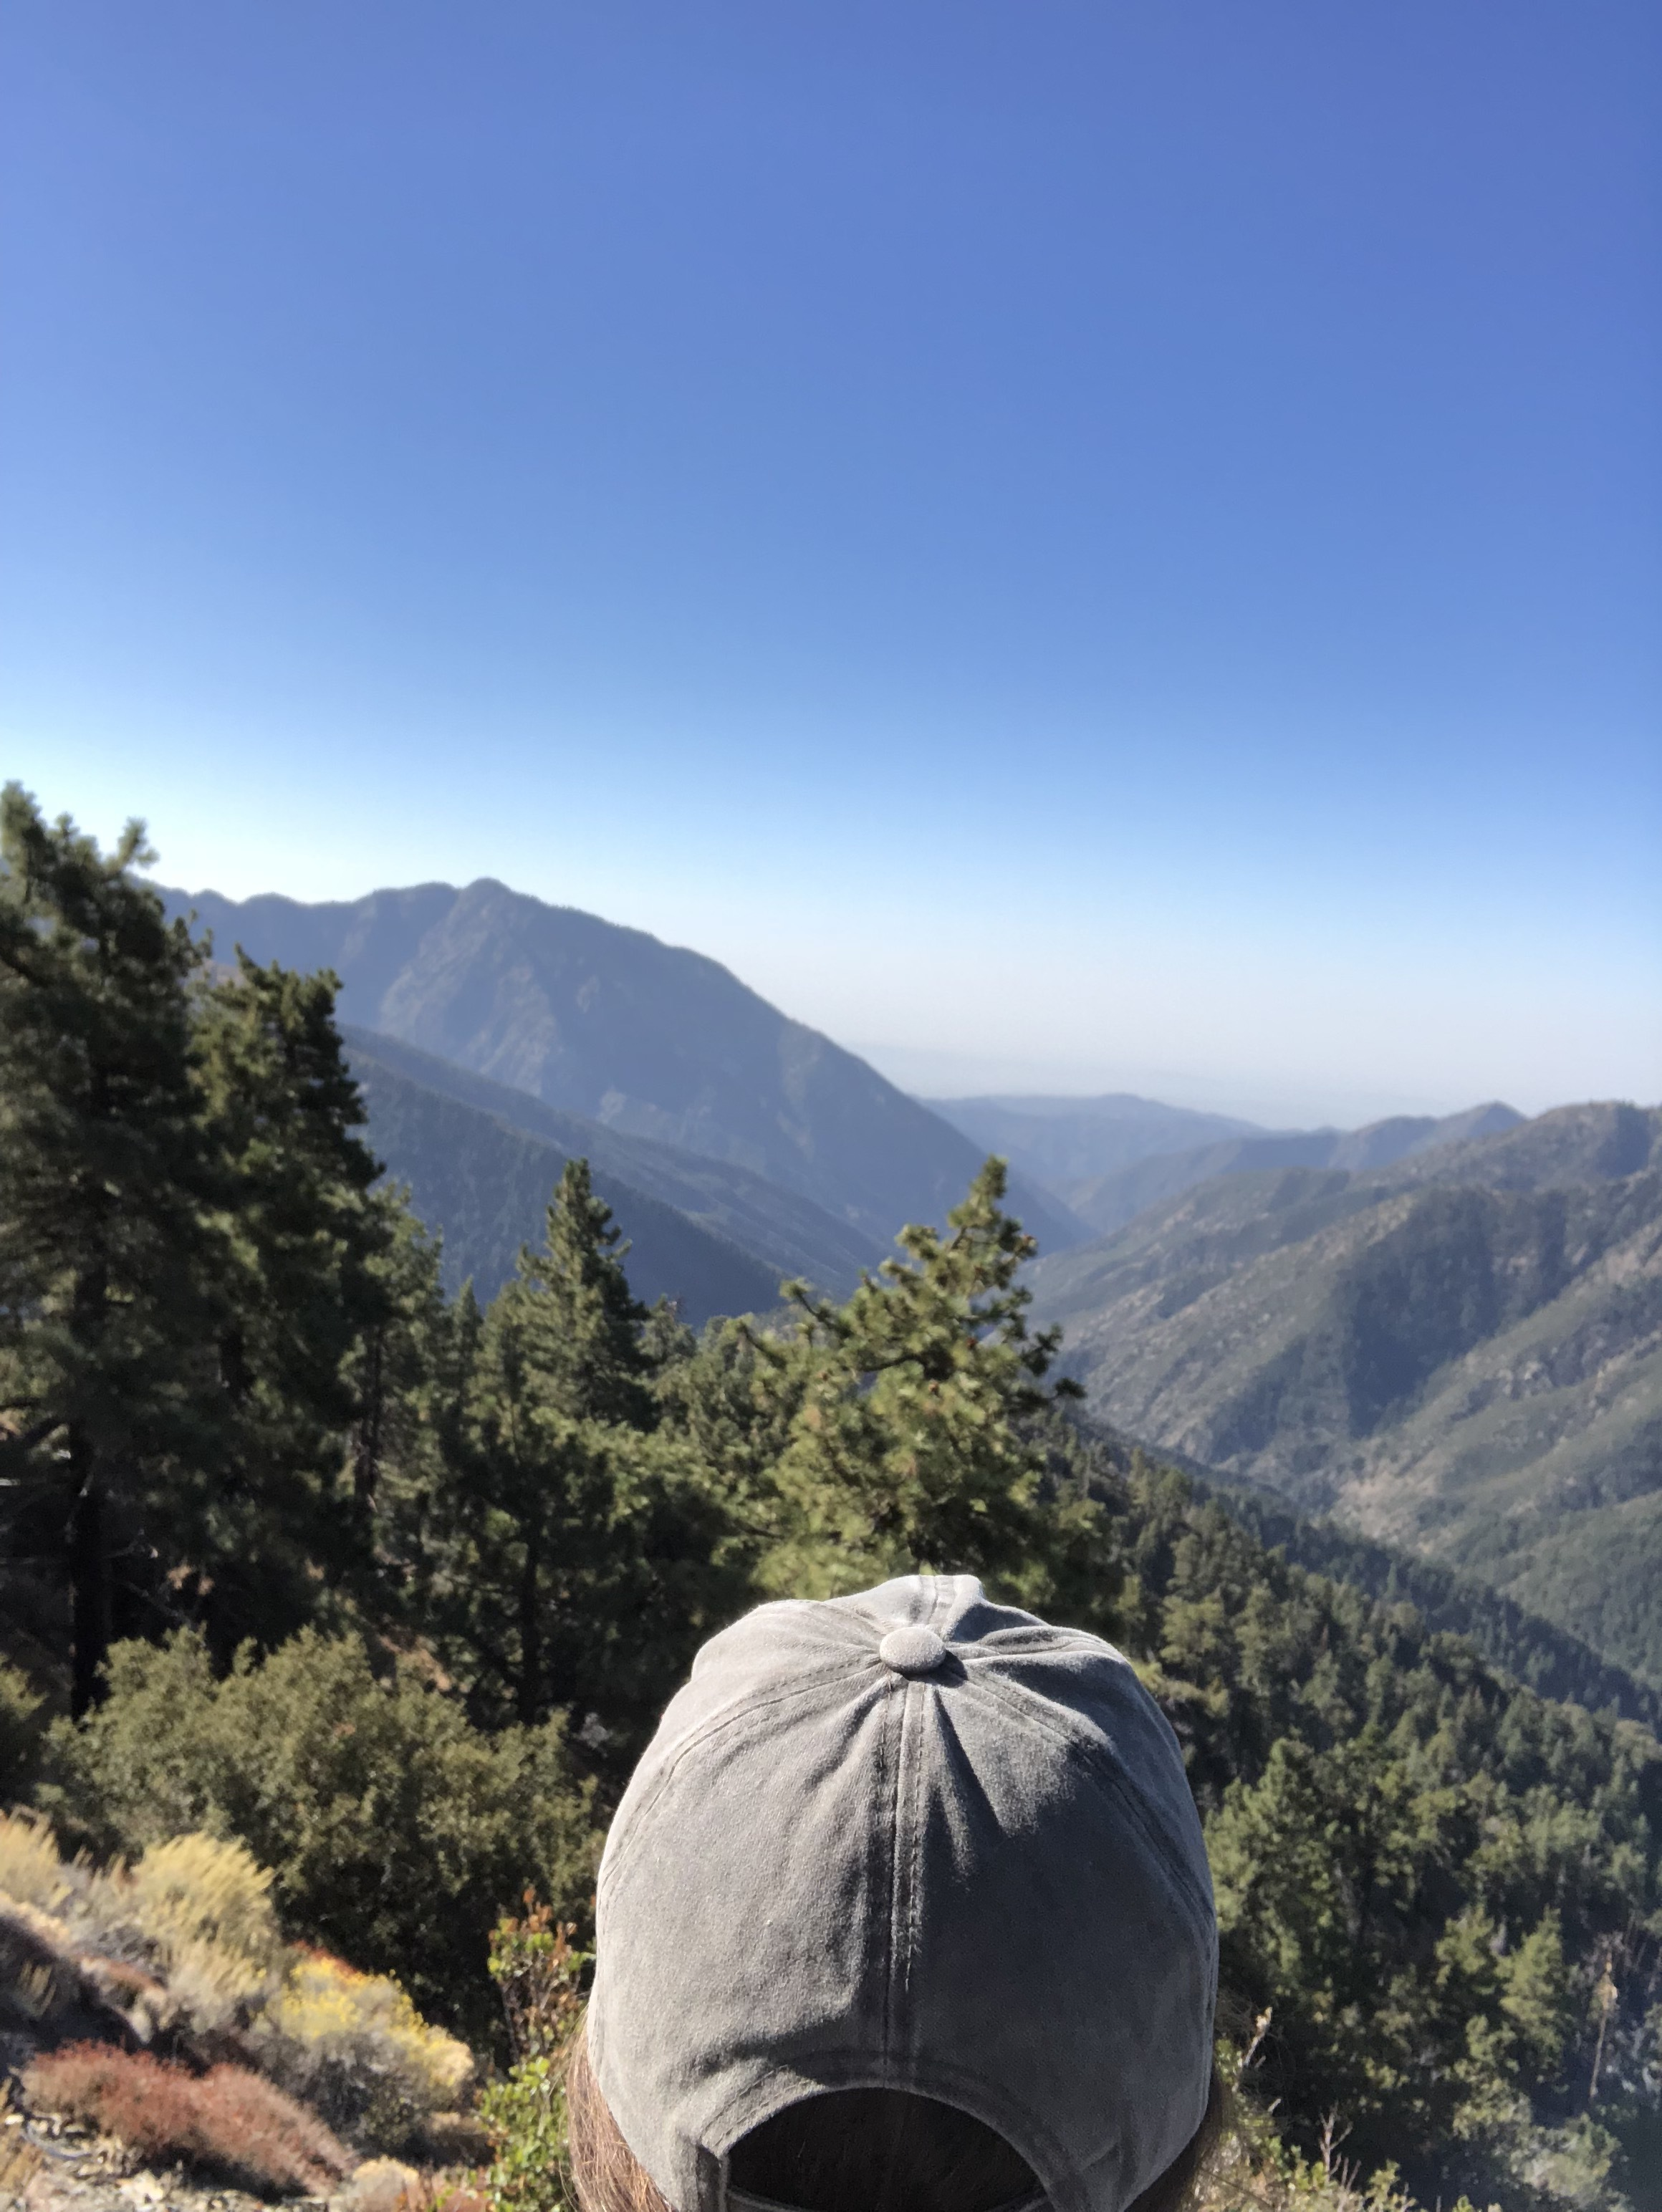 Inspiration Point  / Wrightwood, California U.S.A.